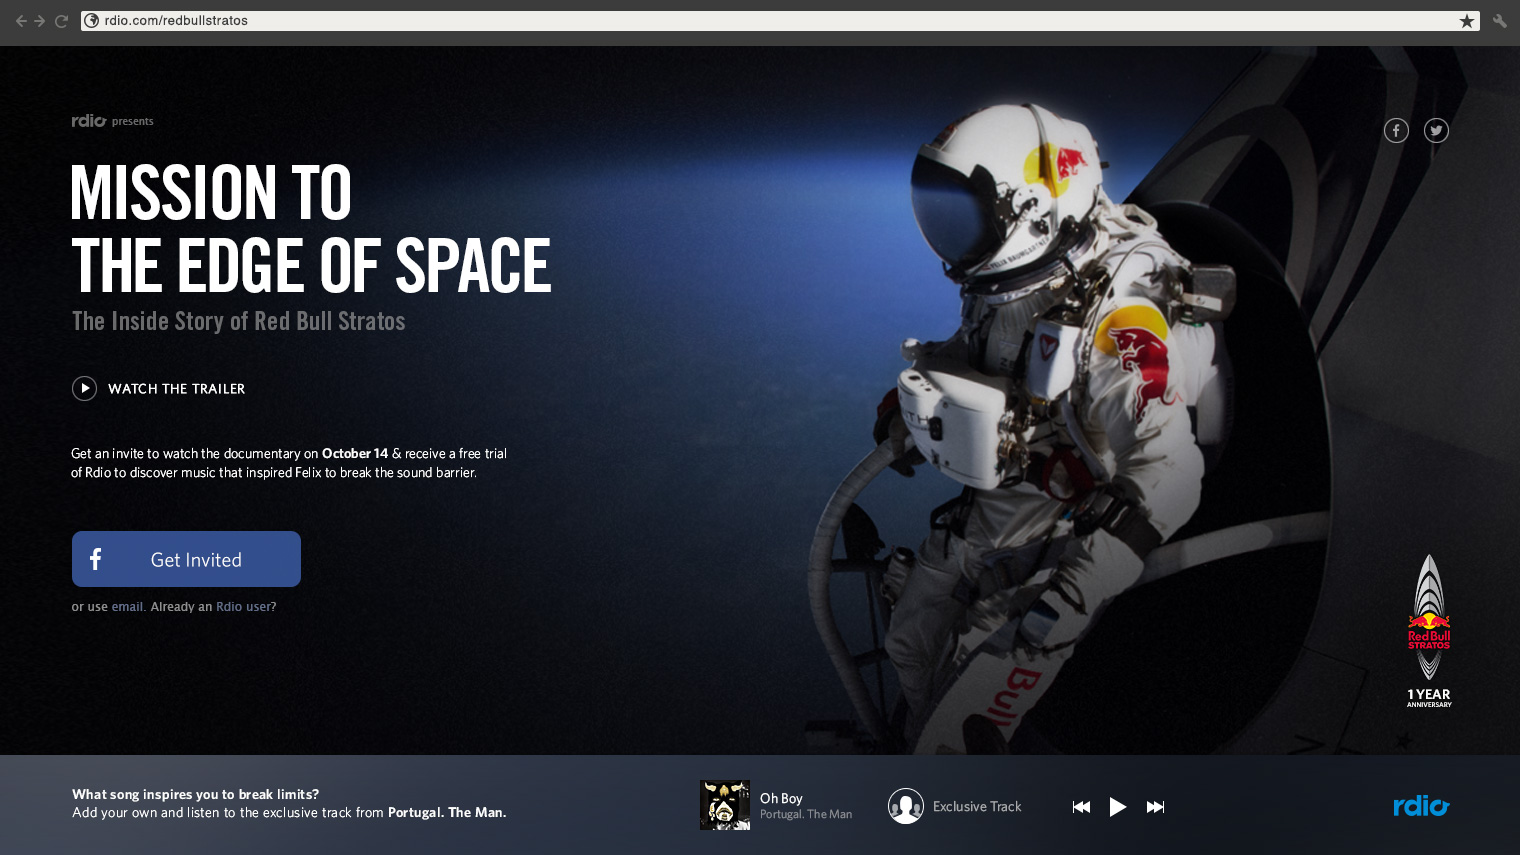 Grow - Rdio: Mission to the Edge of Space